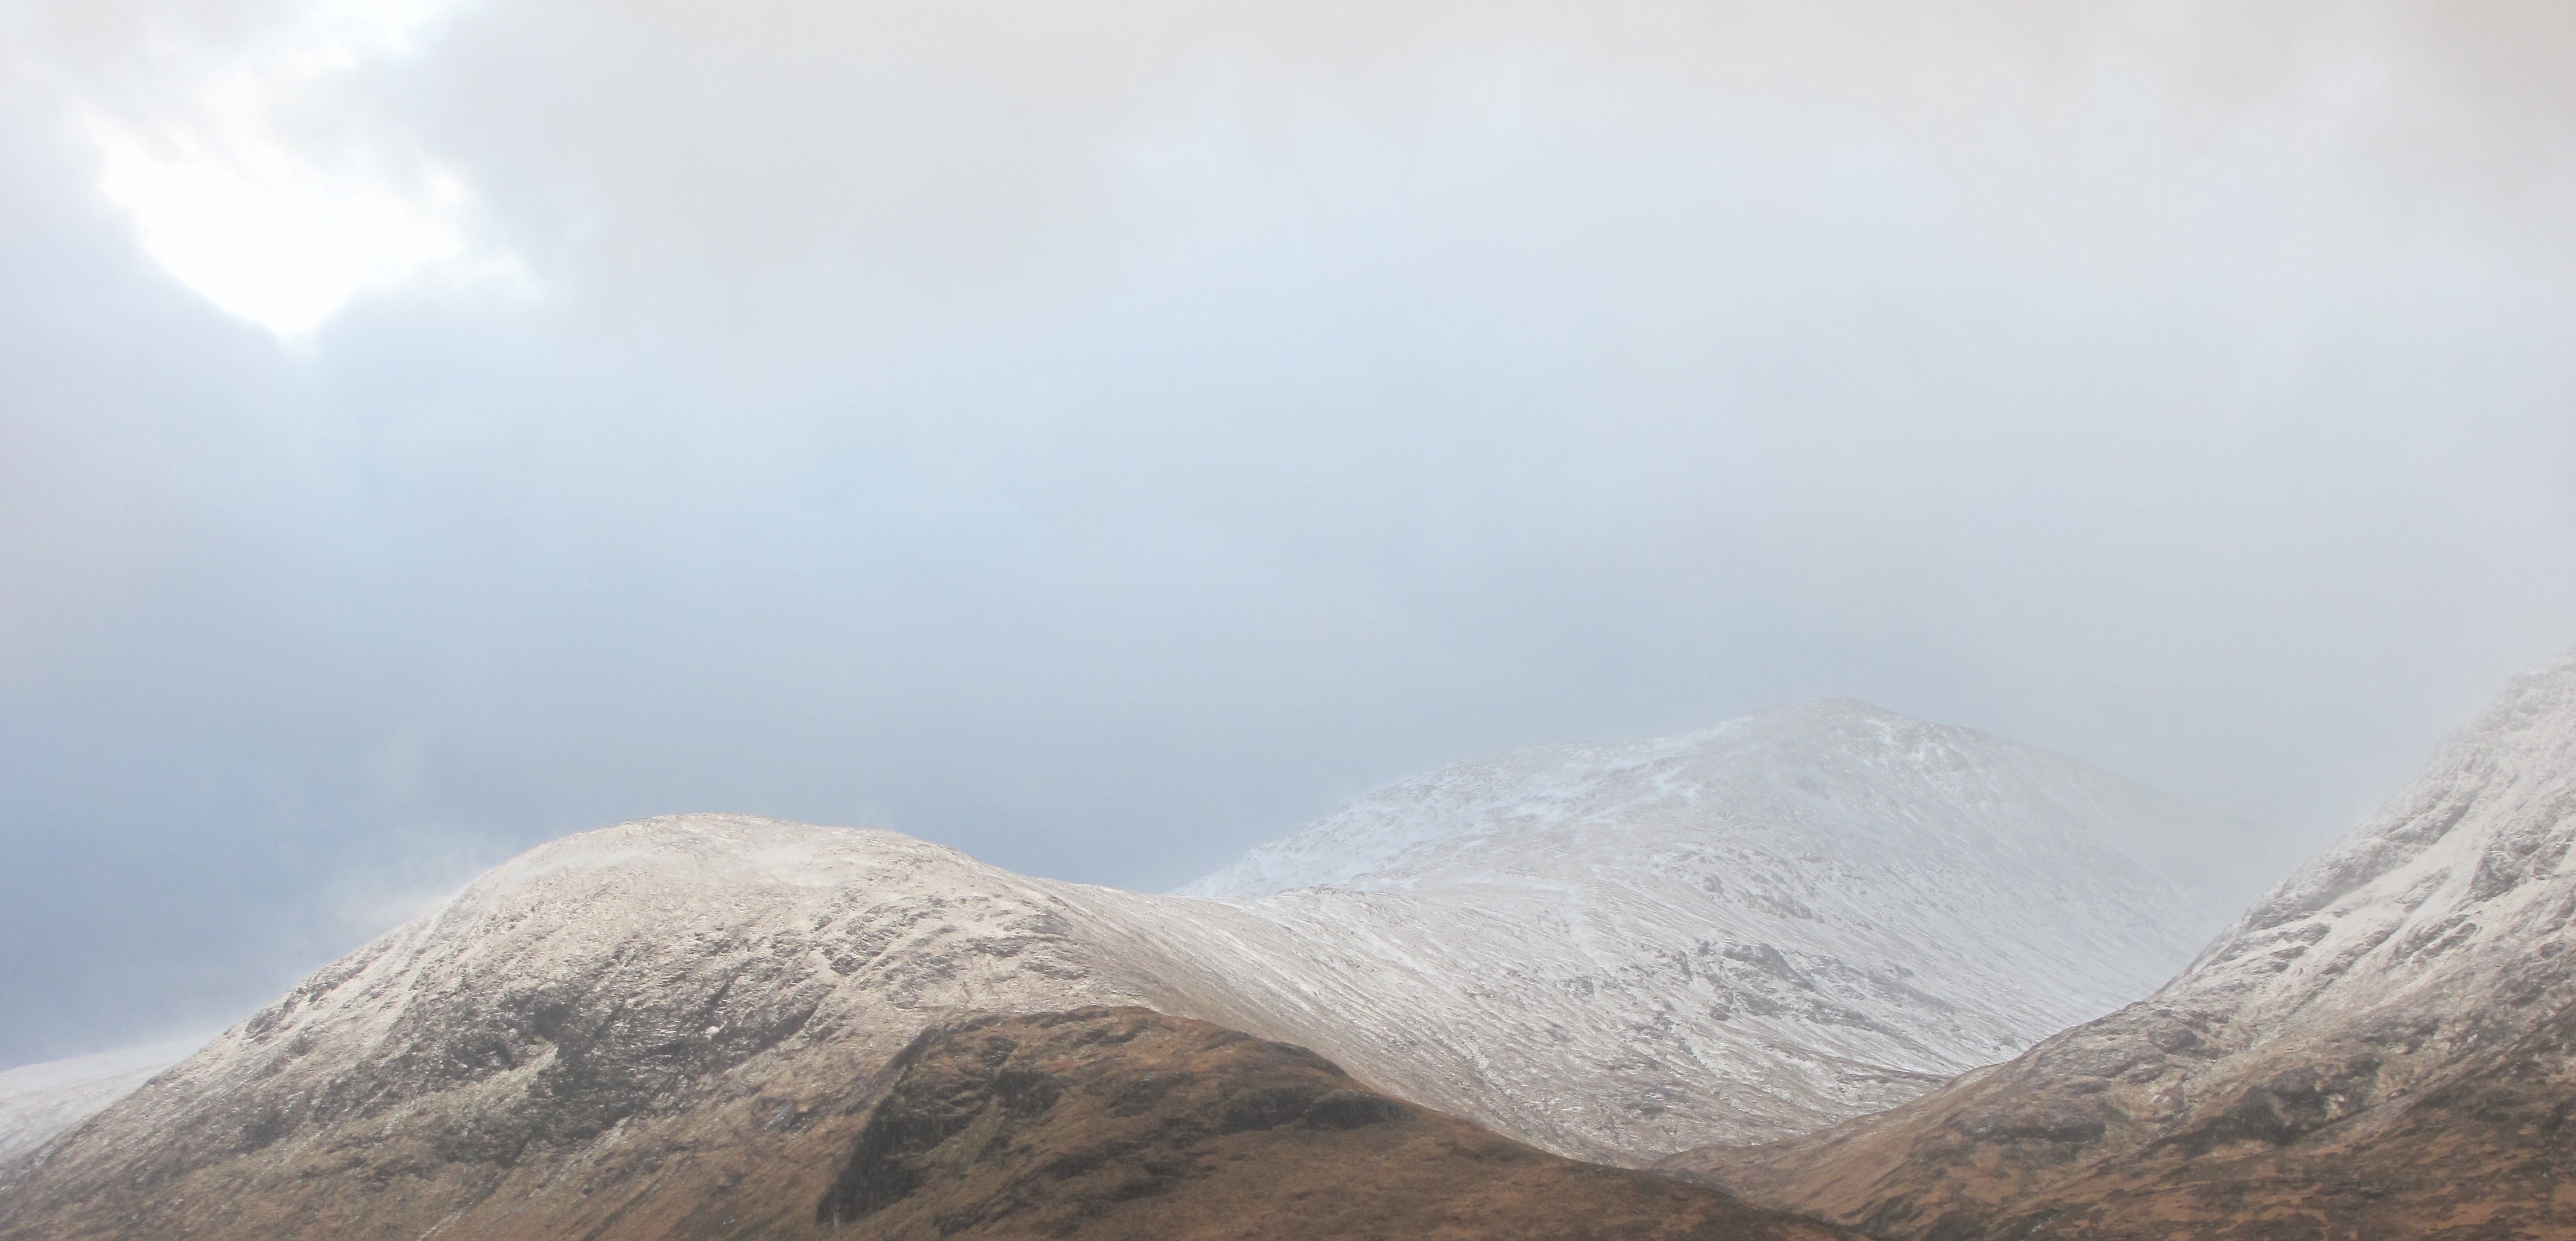 Meall a Bhuiridh - note the wind blowing the snow off Creag Dhubh